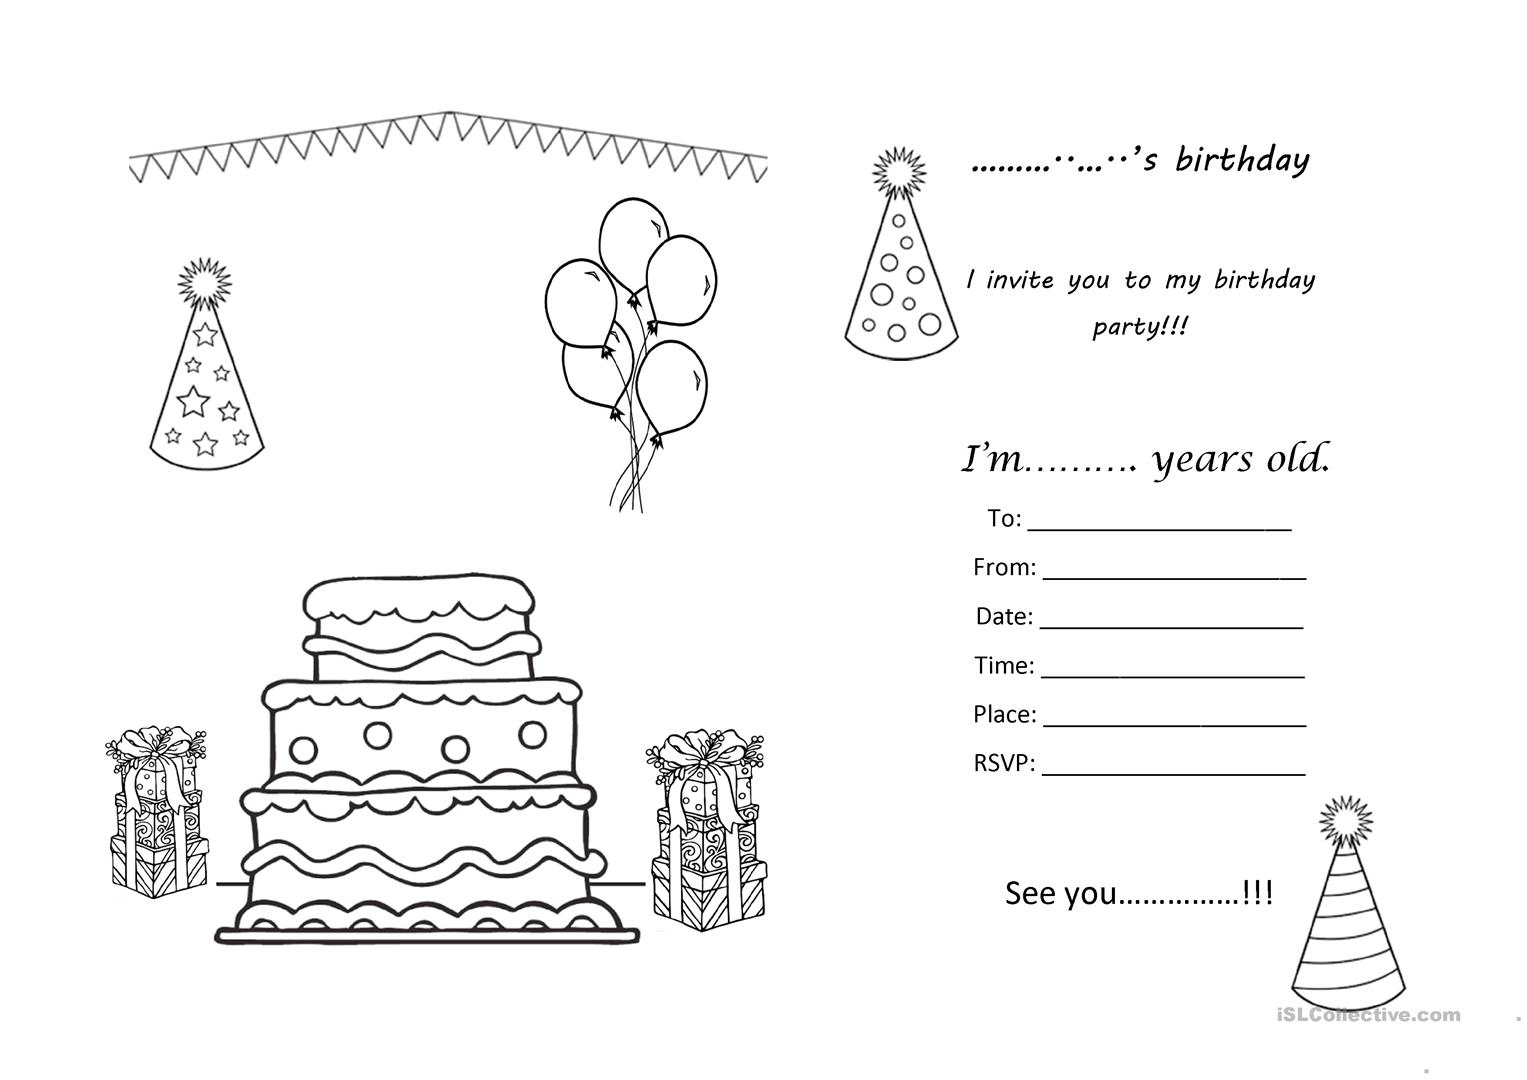 Worksheet Birthday Arizona